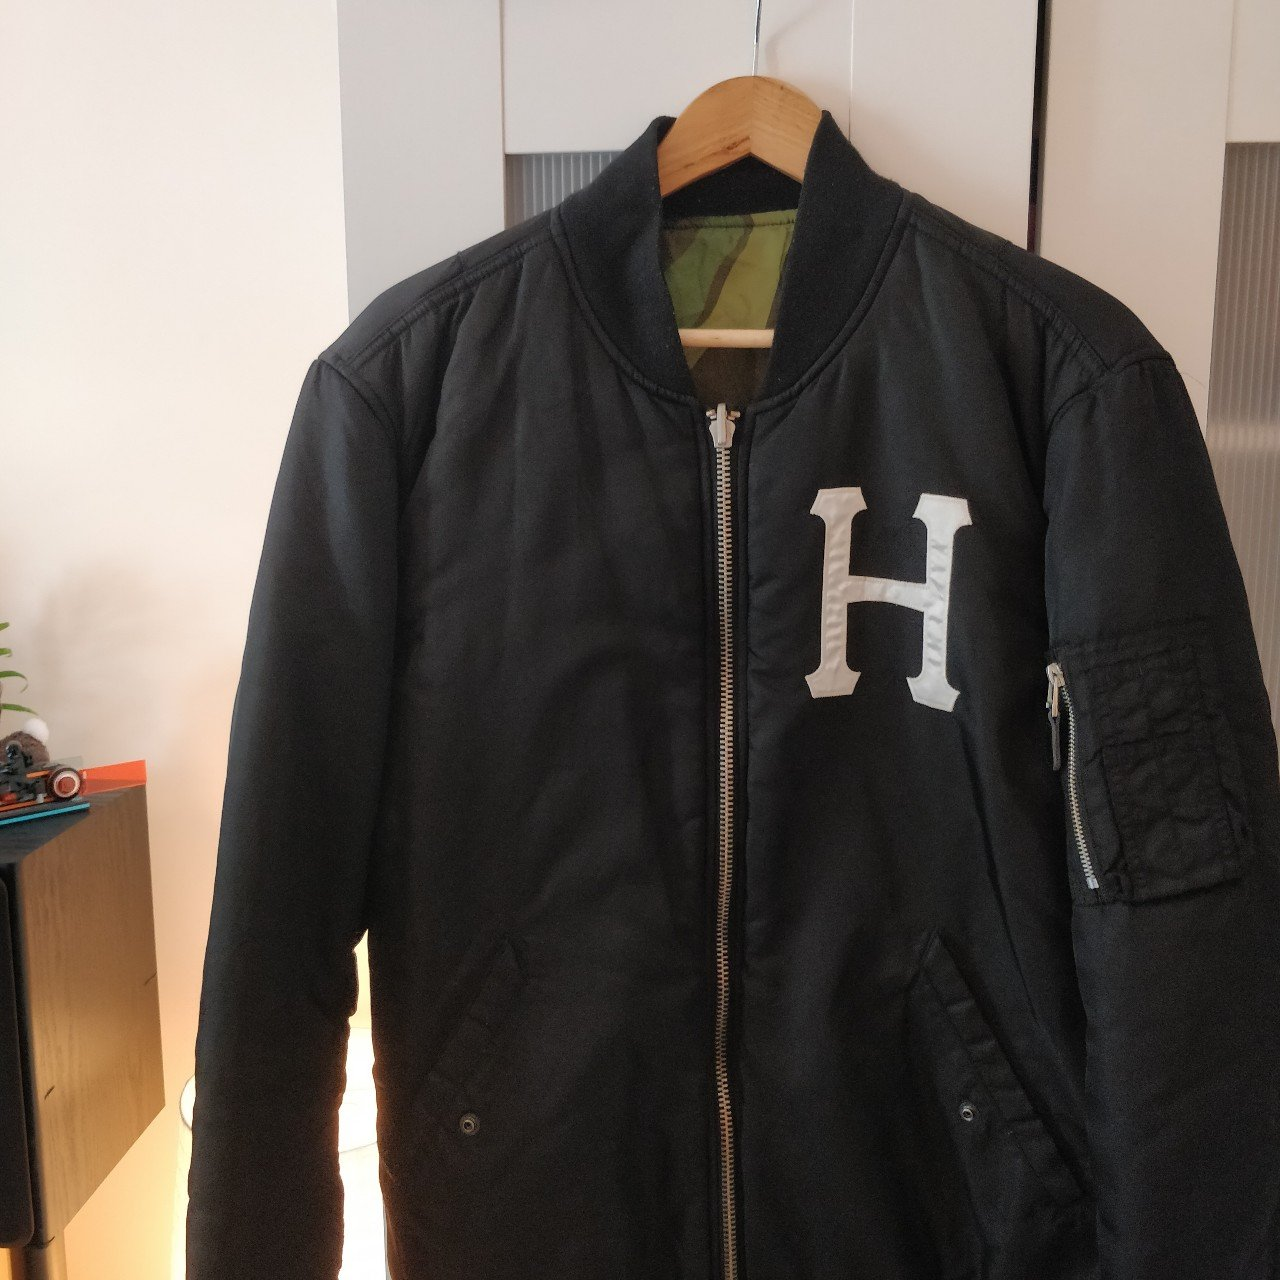 meet super cheap sells HUF reversible bomber jacket in large Lovely piece, only I x - Depop